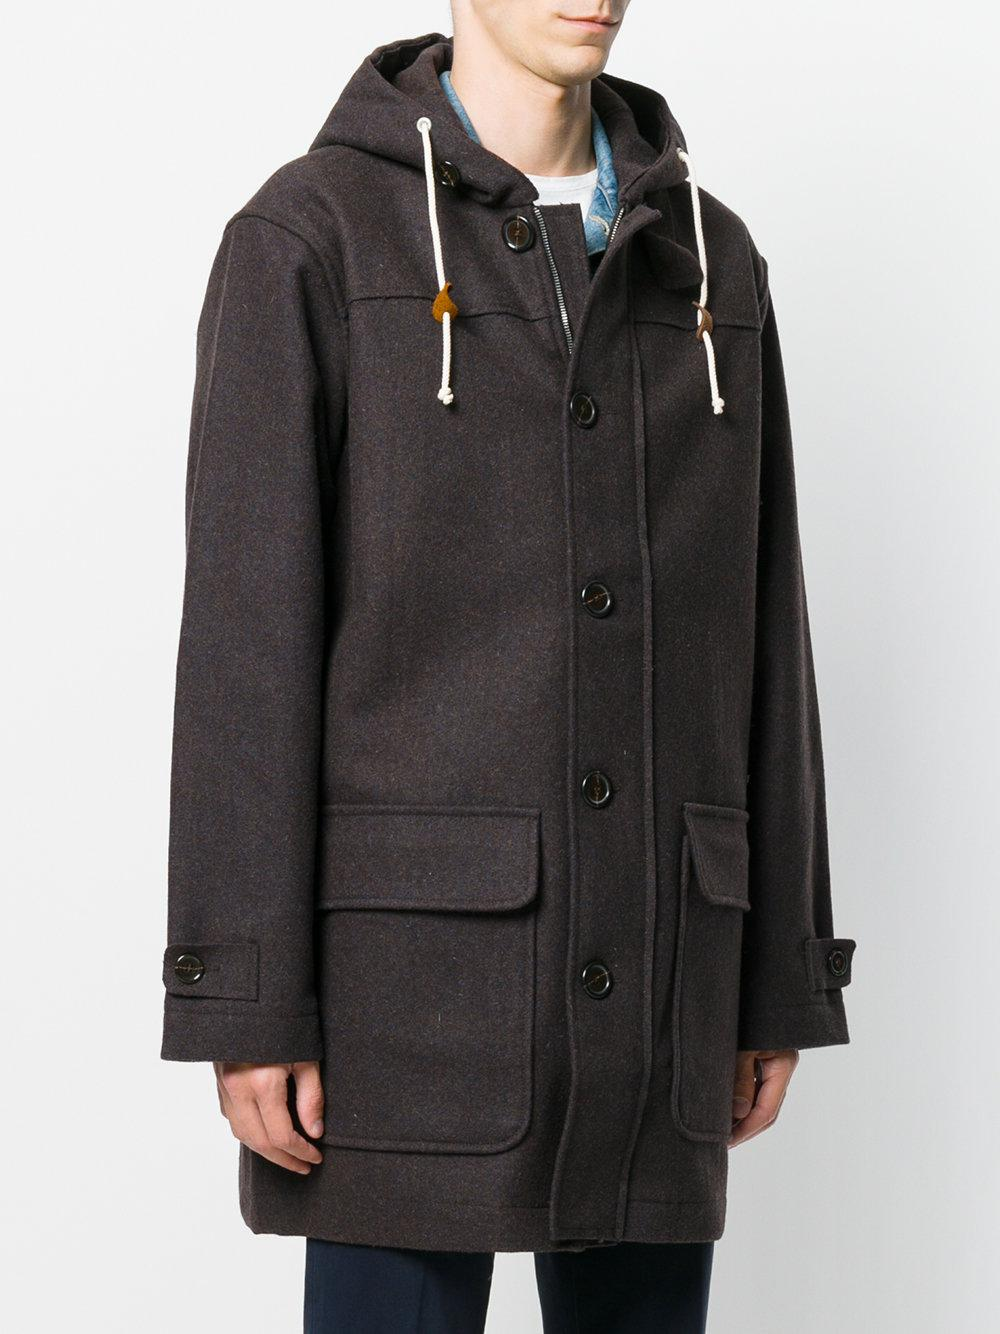 christian single men in coats Rework your outerwear for the season ahead by exploring the impressive collection of men's designer jackets at farfetch now find unique men's jacket designs from some of the industry's most.